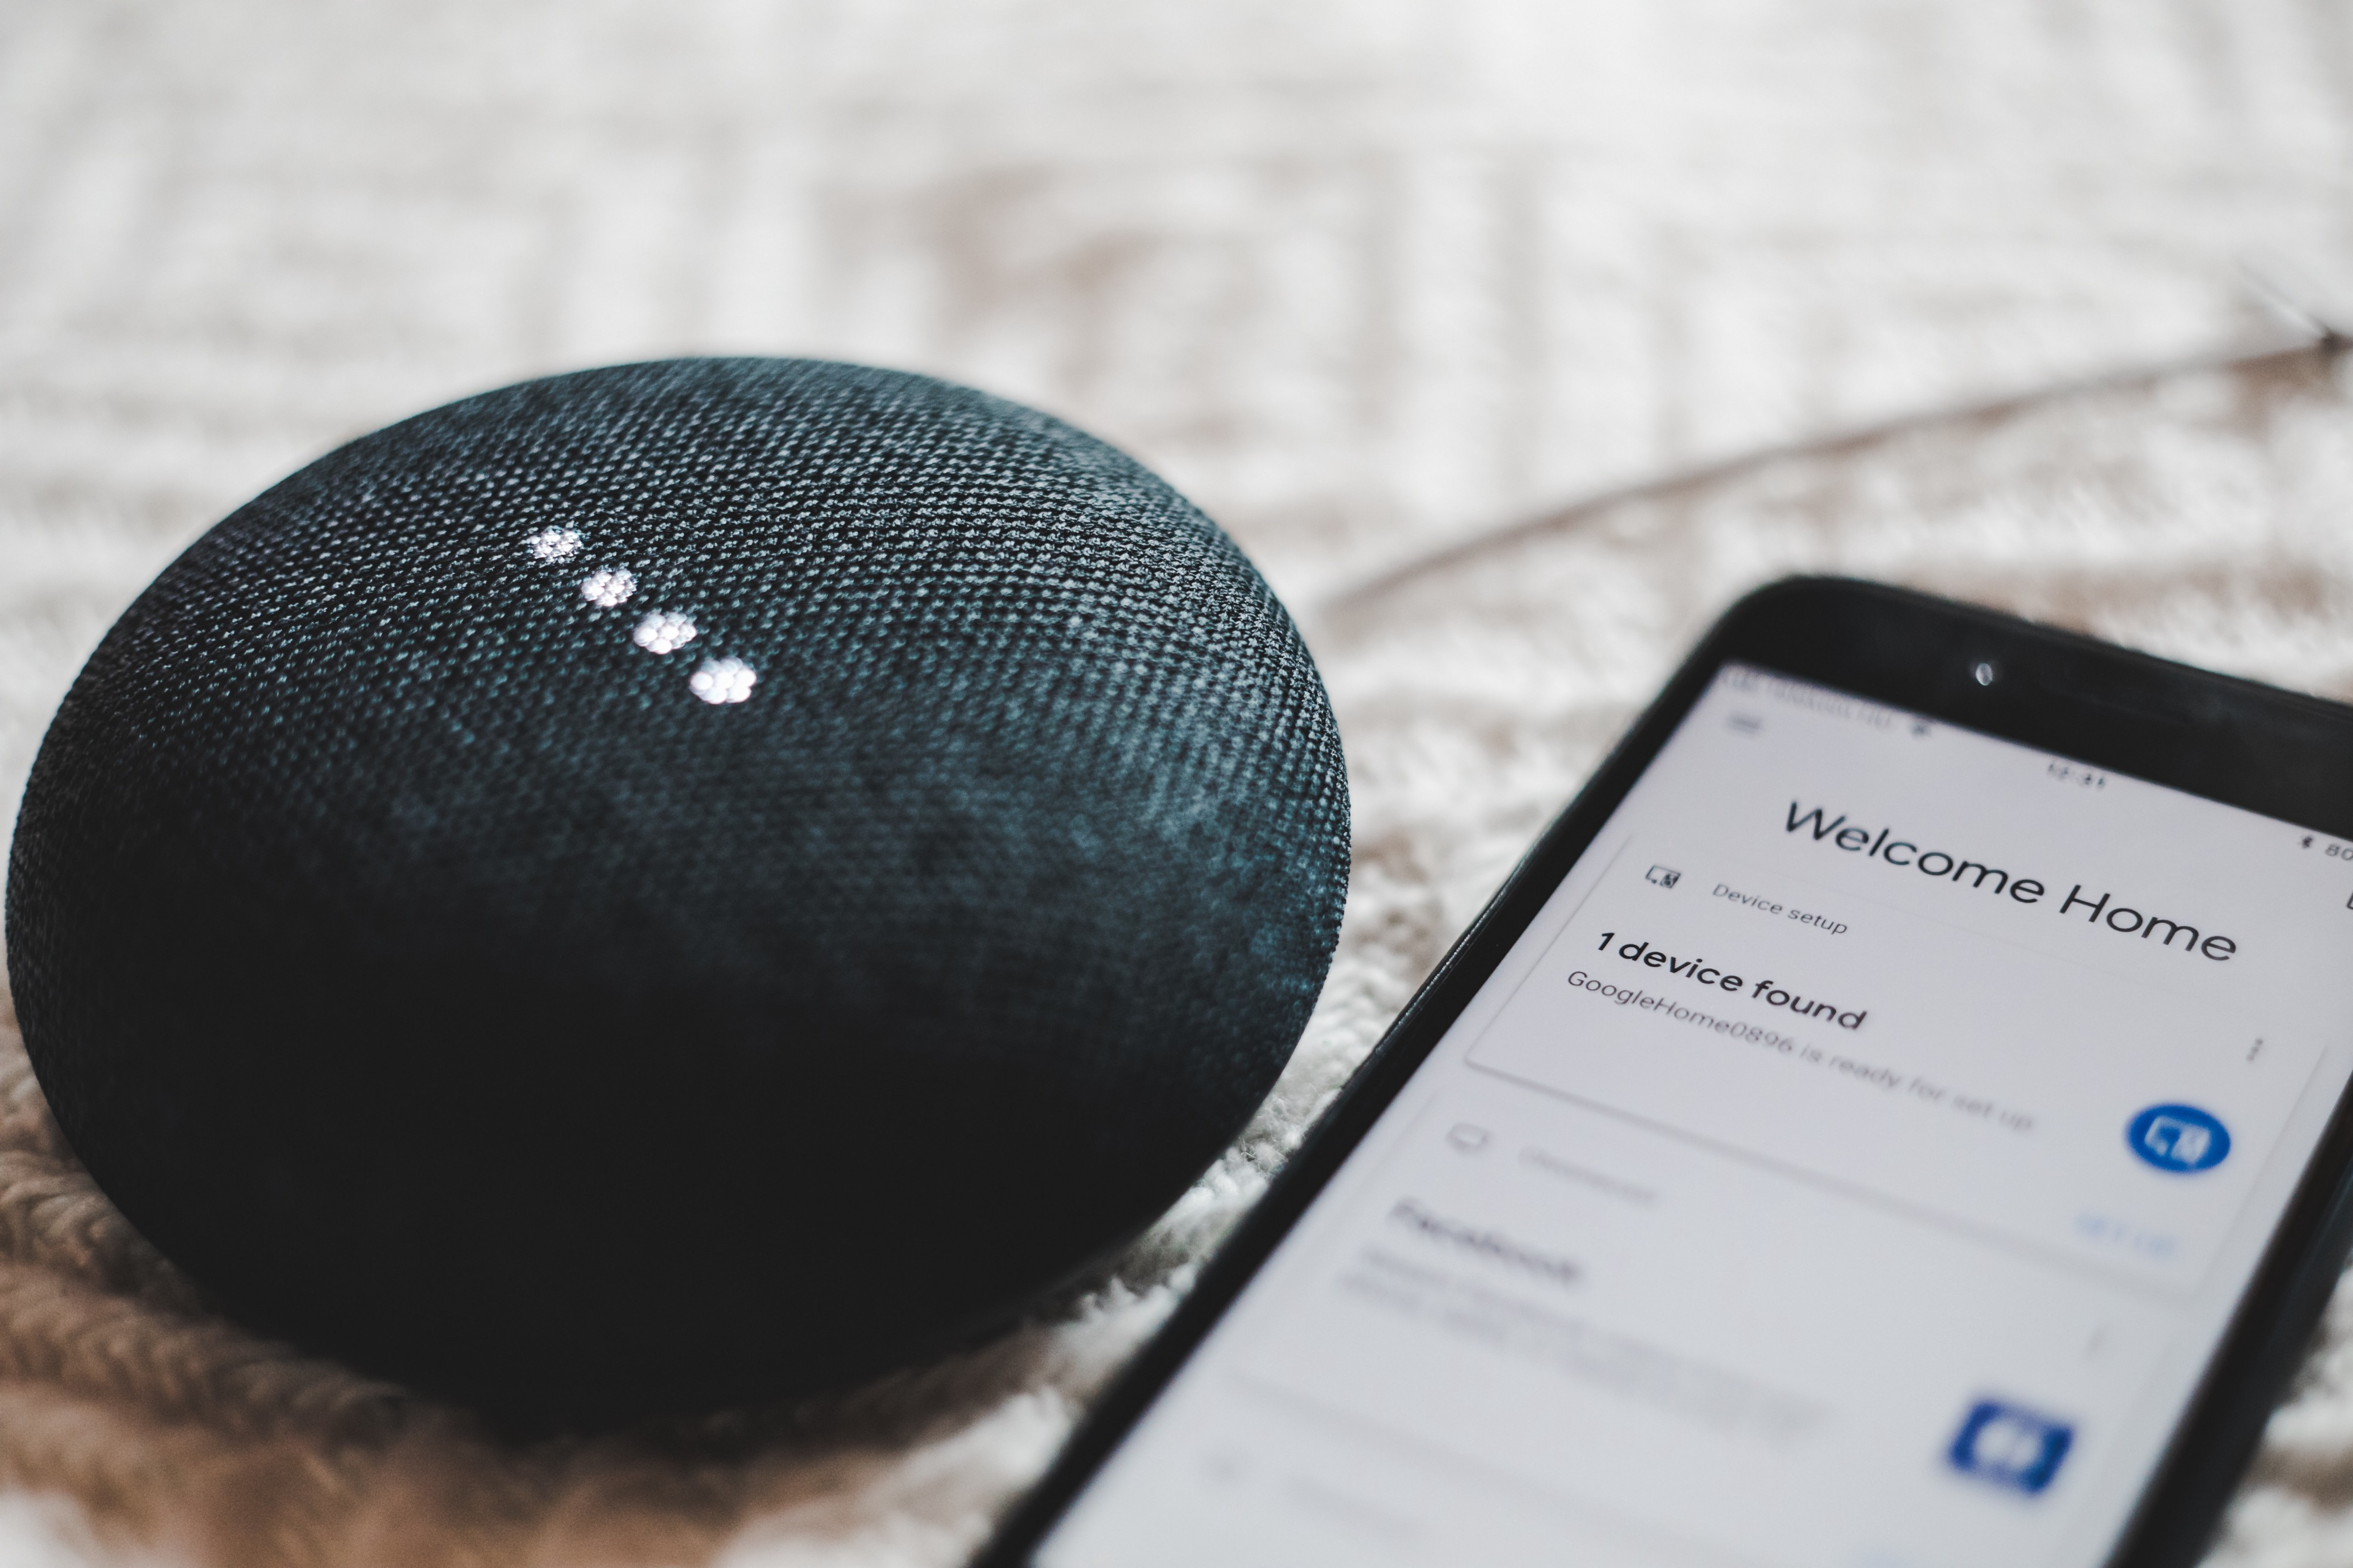 Google Home Mini, un altavoz para usar Google Assistant. Foto de [**Bence Boros](https://unsplash.com/photos/anapPhJFRhM) en Unsplash.**